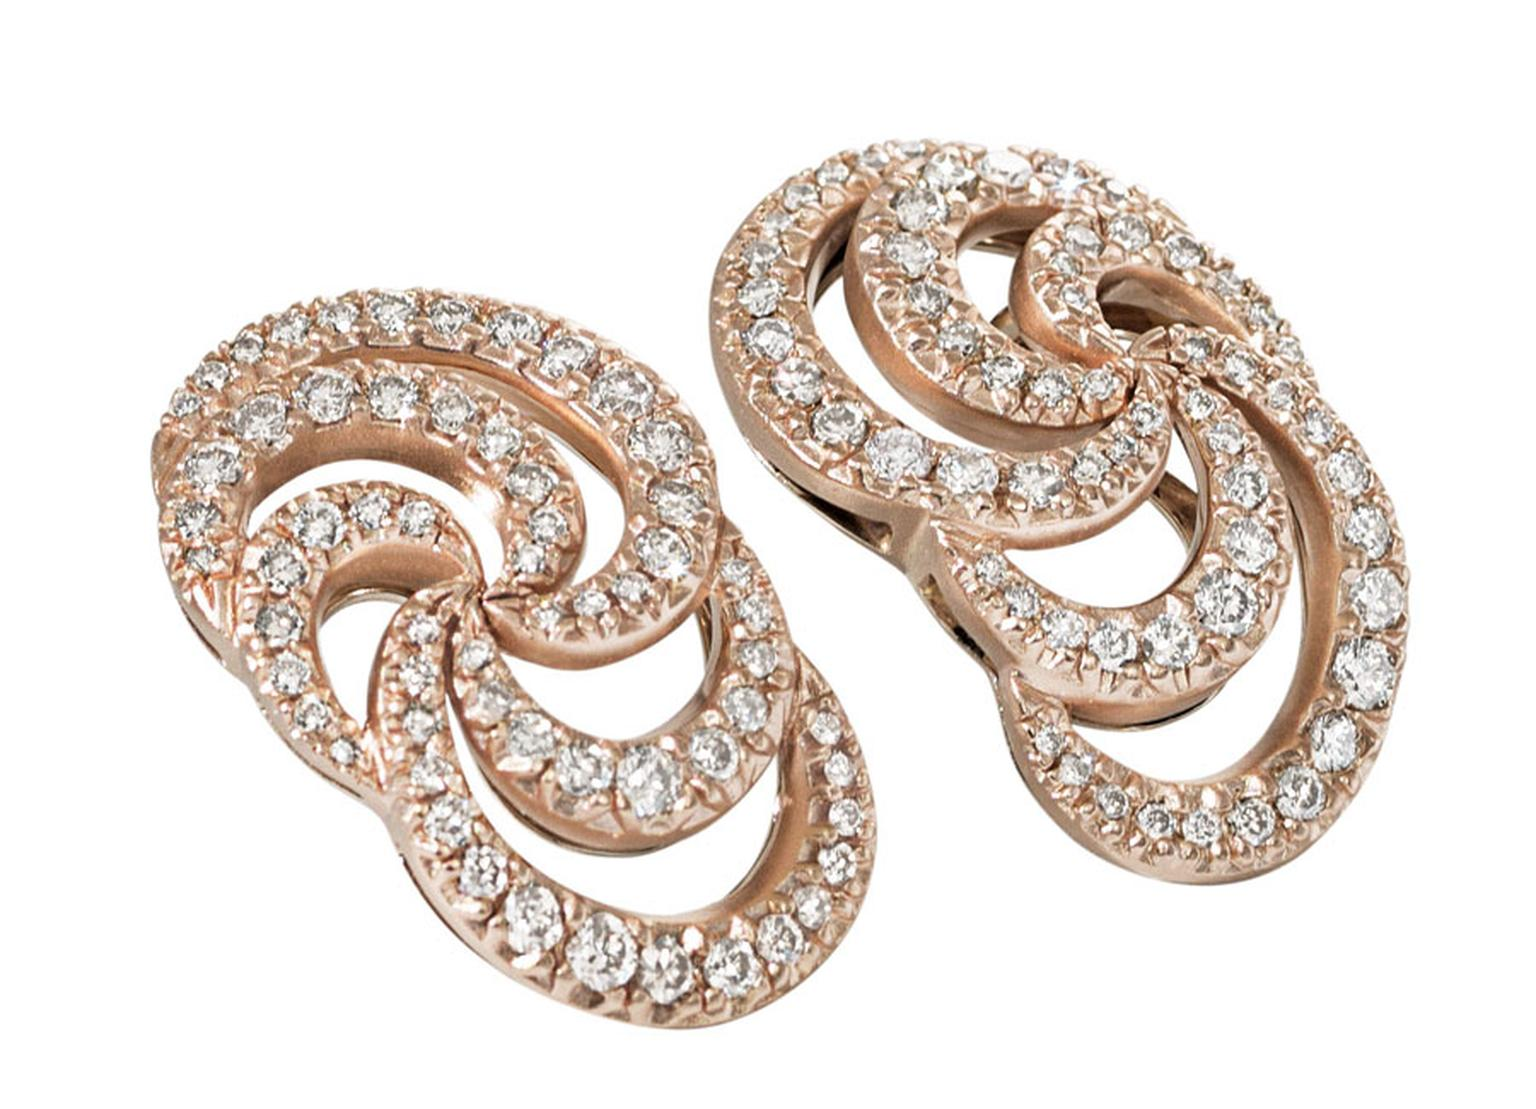 H-Stern-Earrings-in-rose-gold-with-diamonds-